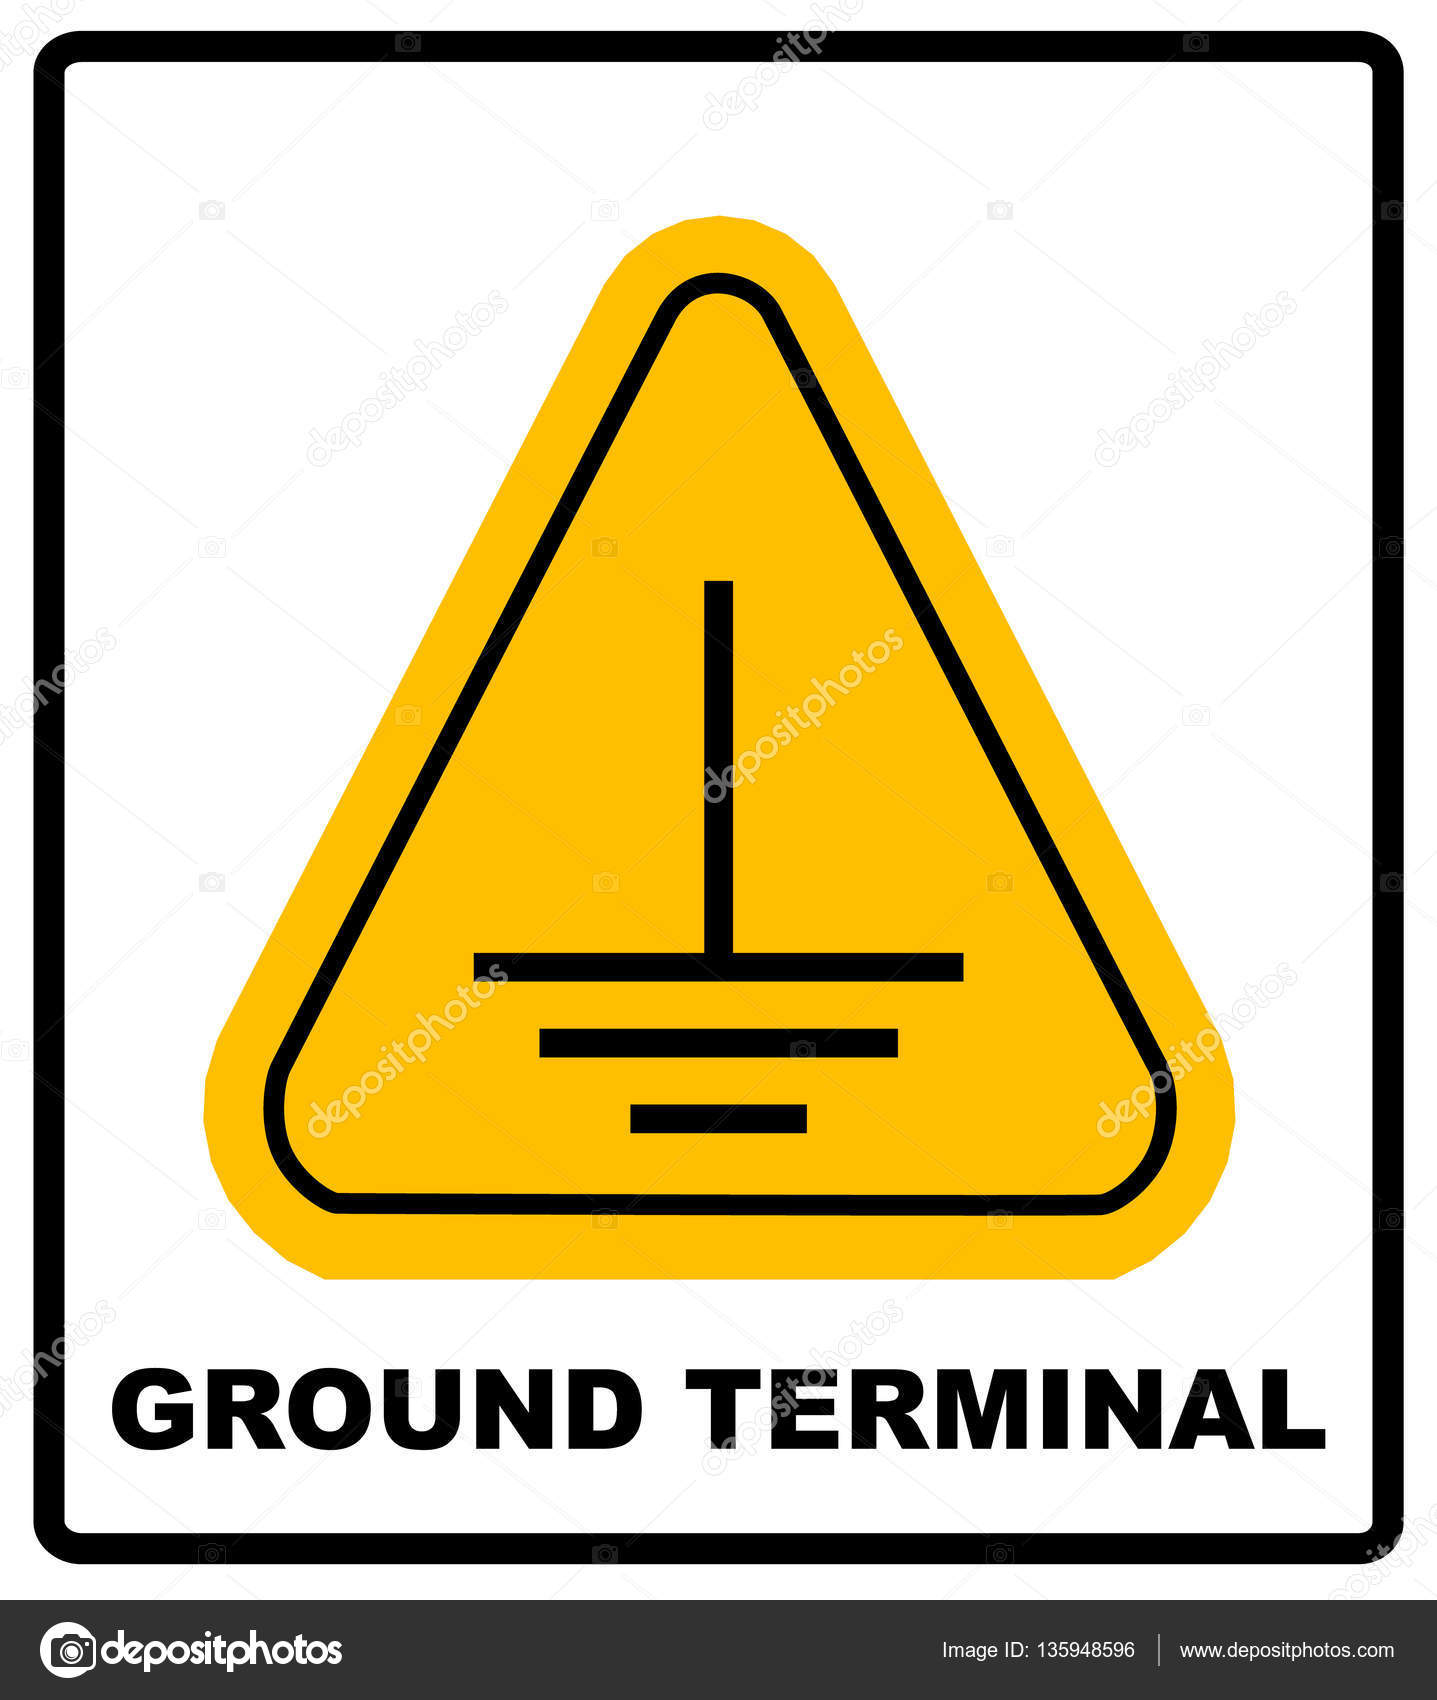 Electrical Grounding Sign Stock Vector Merly69 135948596